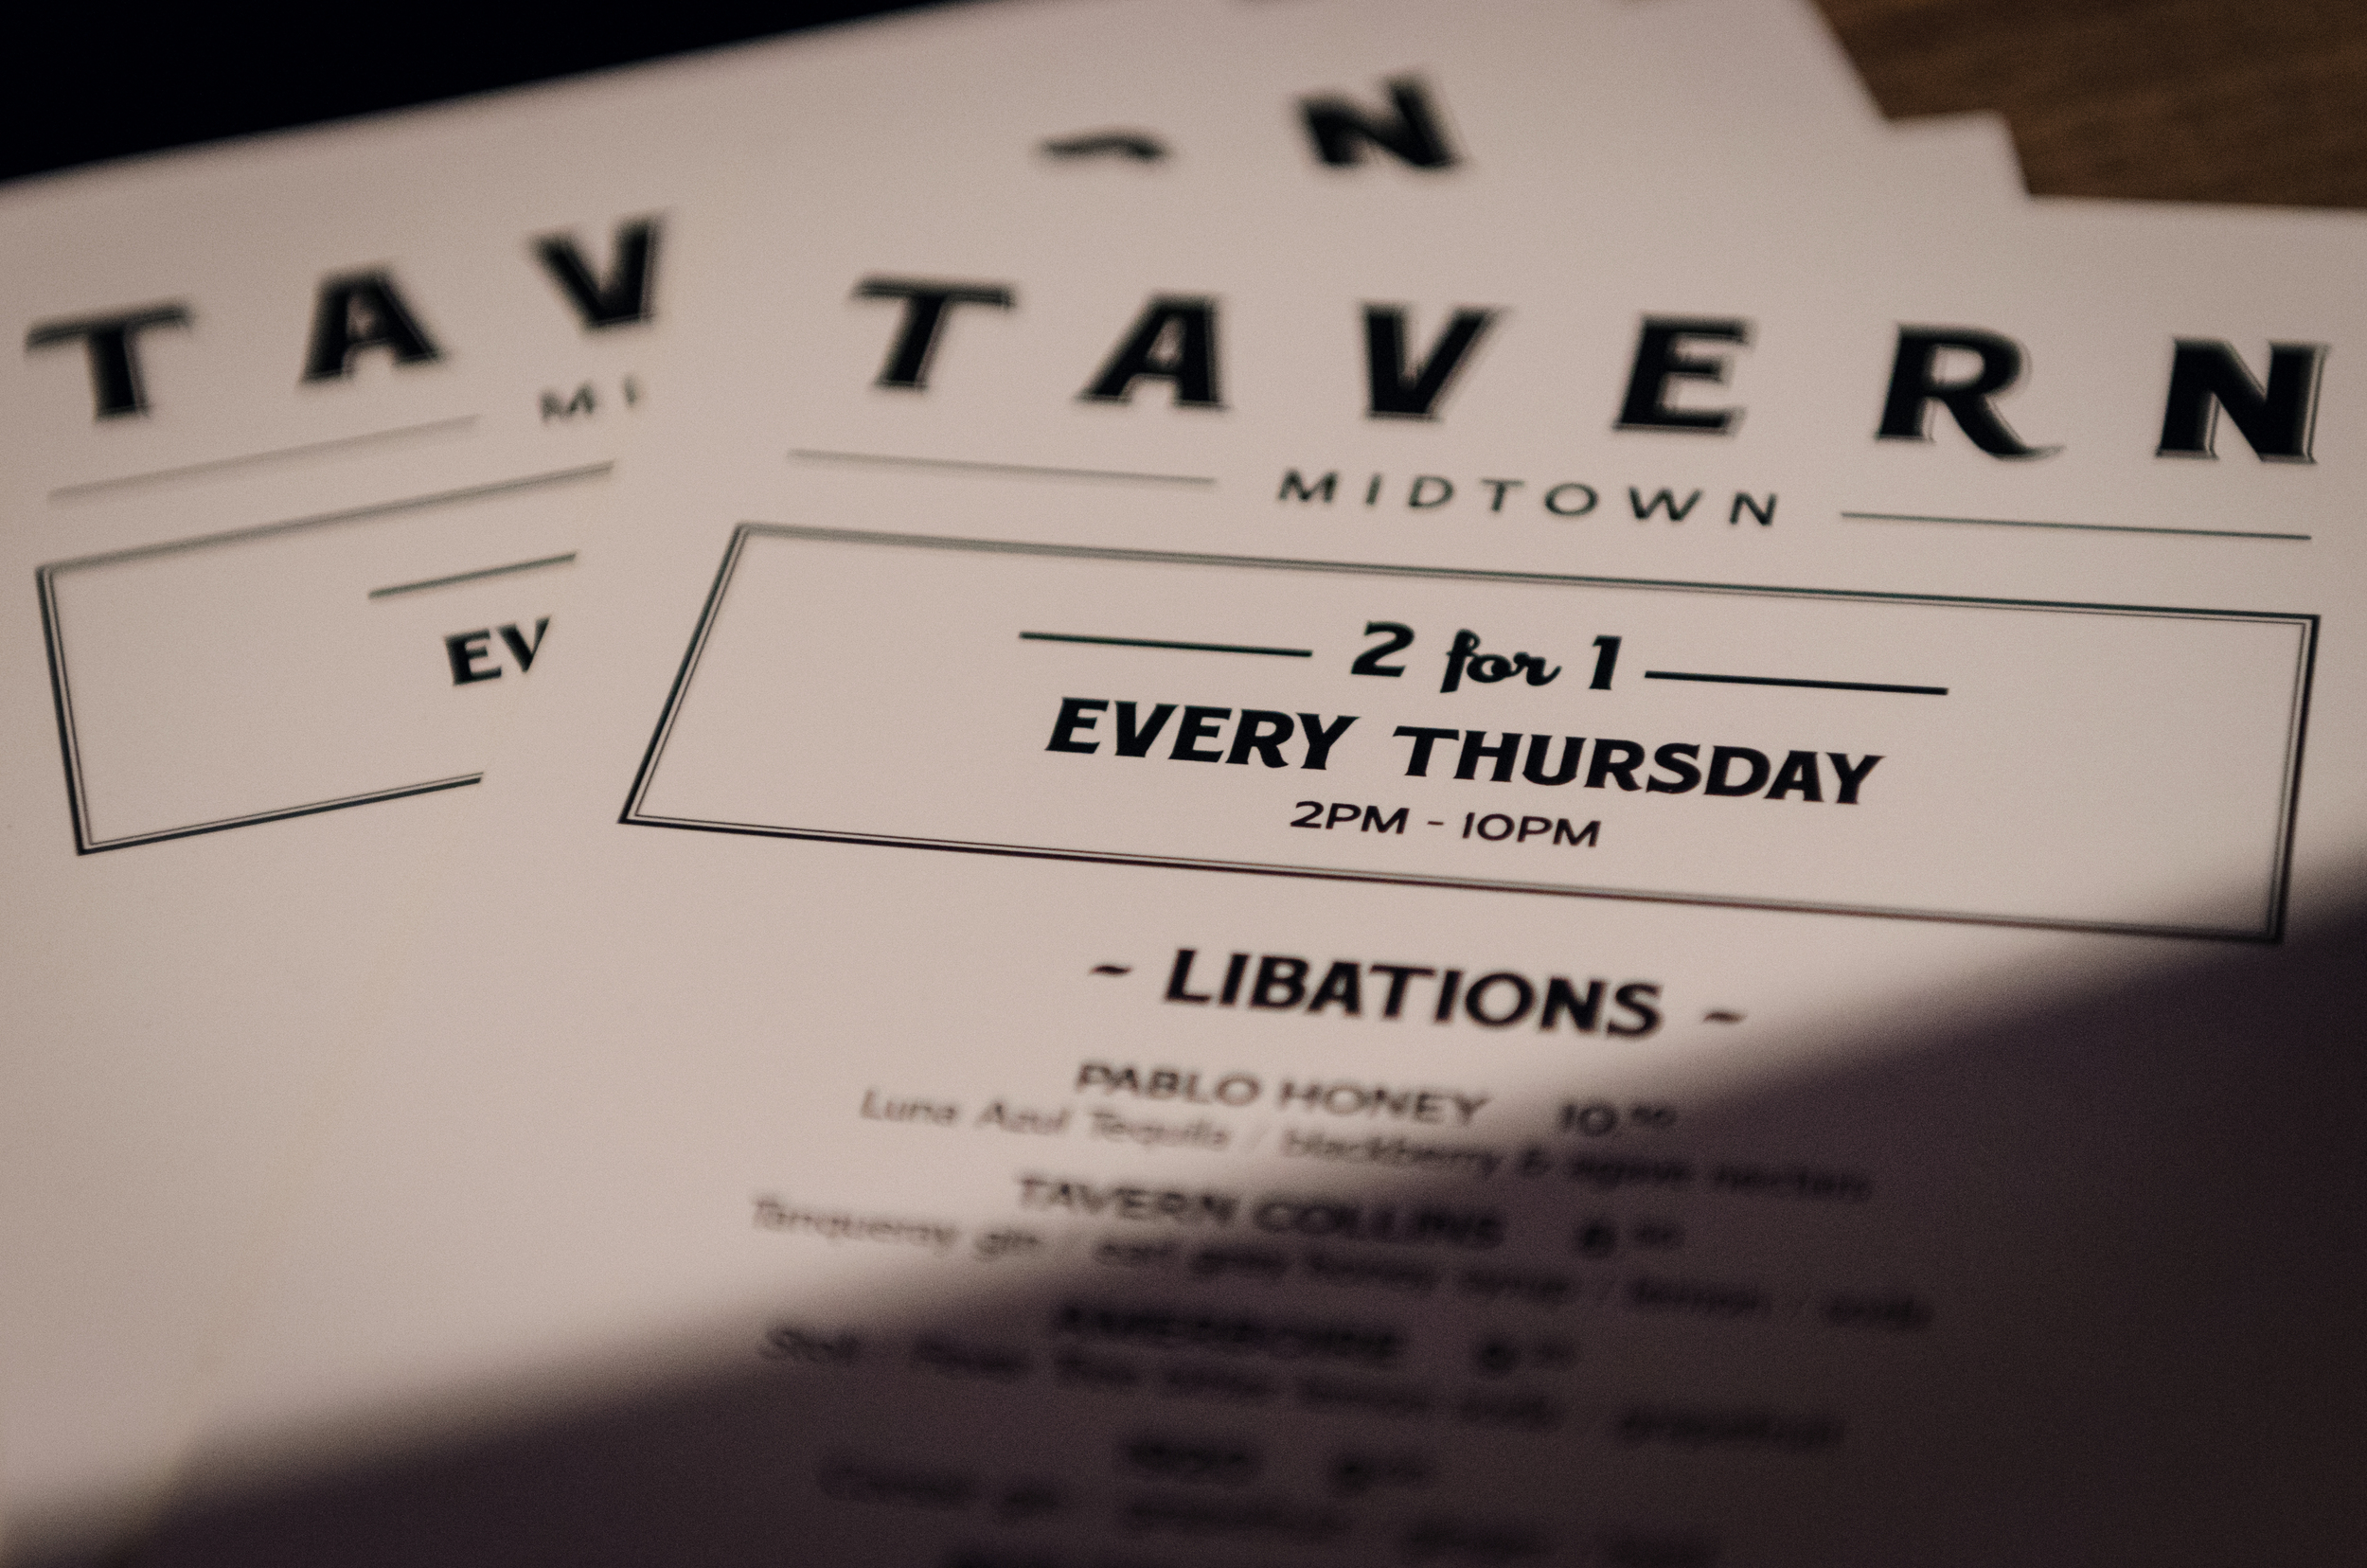 Tavern  2-for-1s are now moved to Thursday. Come over at 2 PM and start early on the fun!